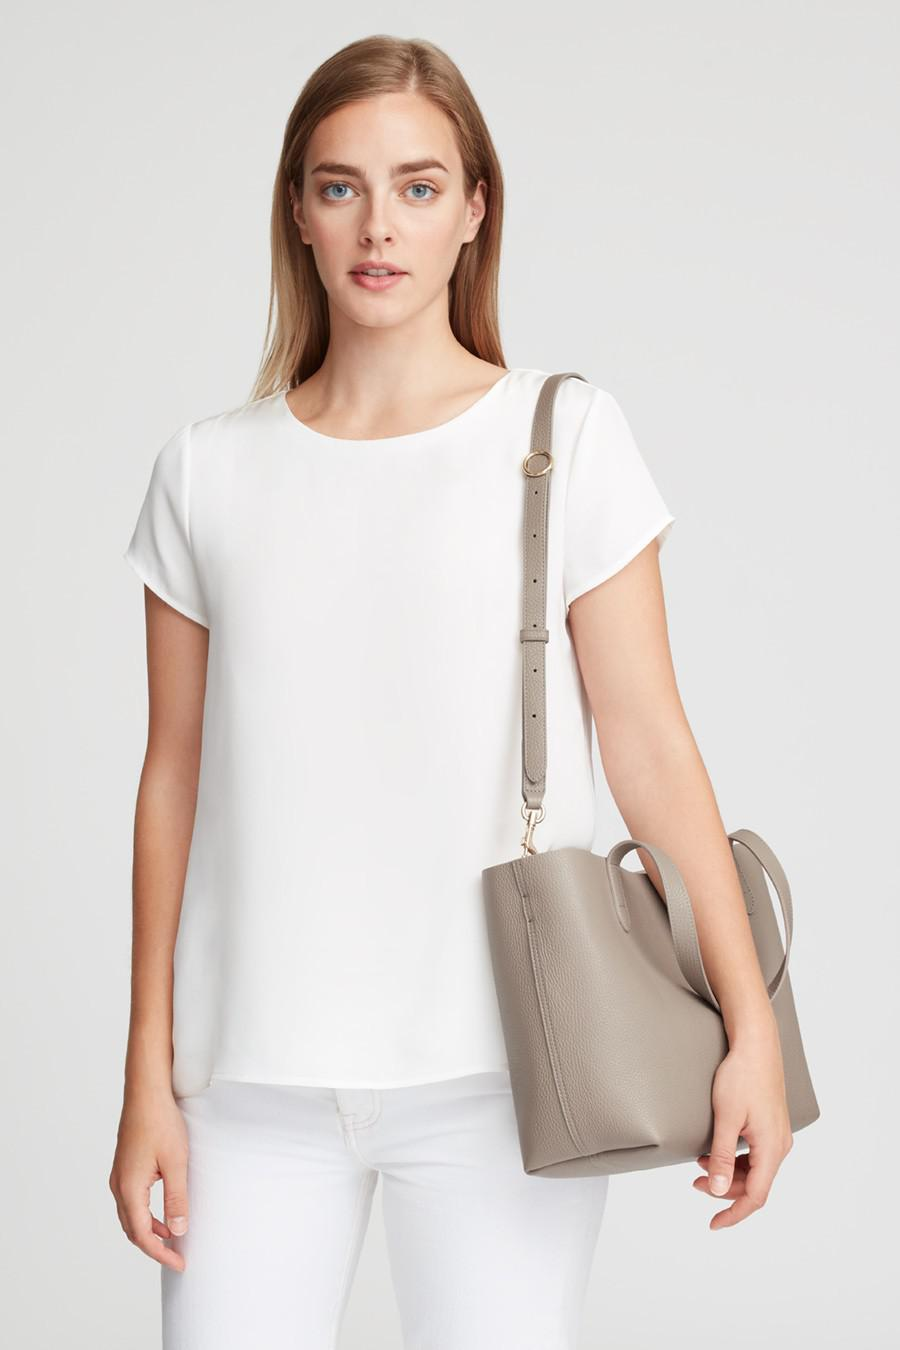 Women's Small Structured Leather Tote Bag in Stone/Blush Pink   Pebbled Leather by Cuyana 4